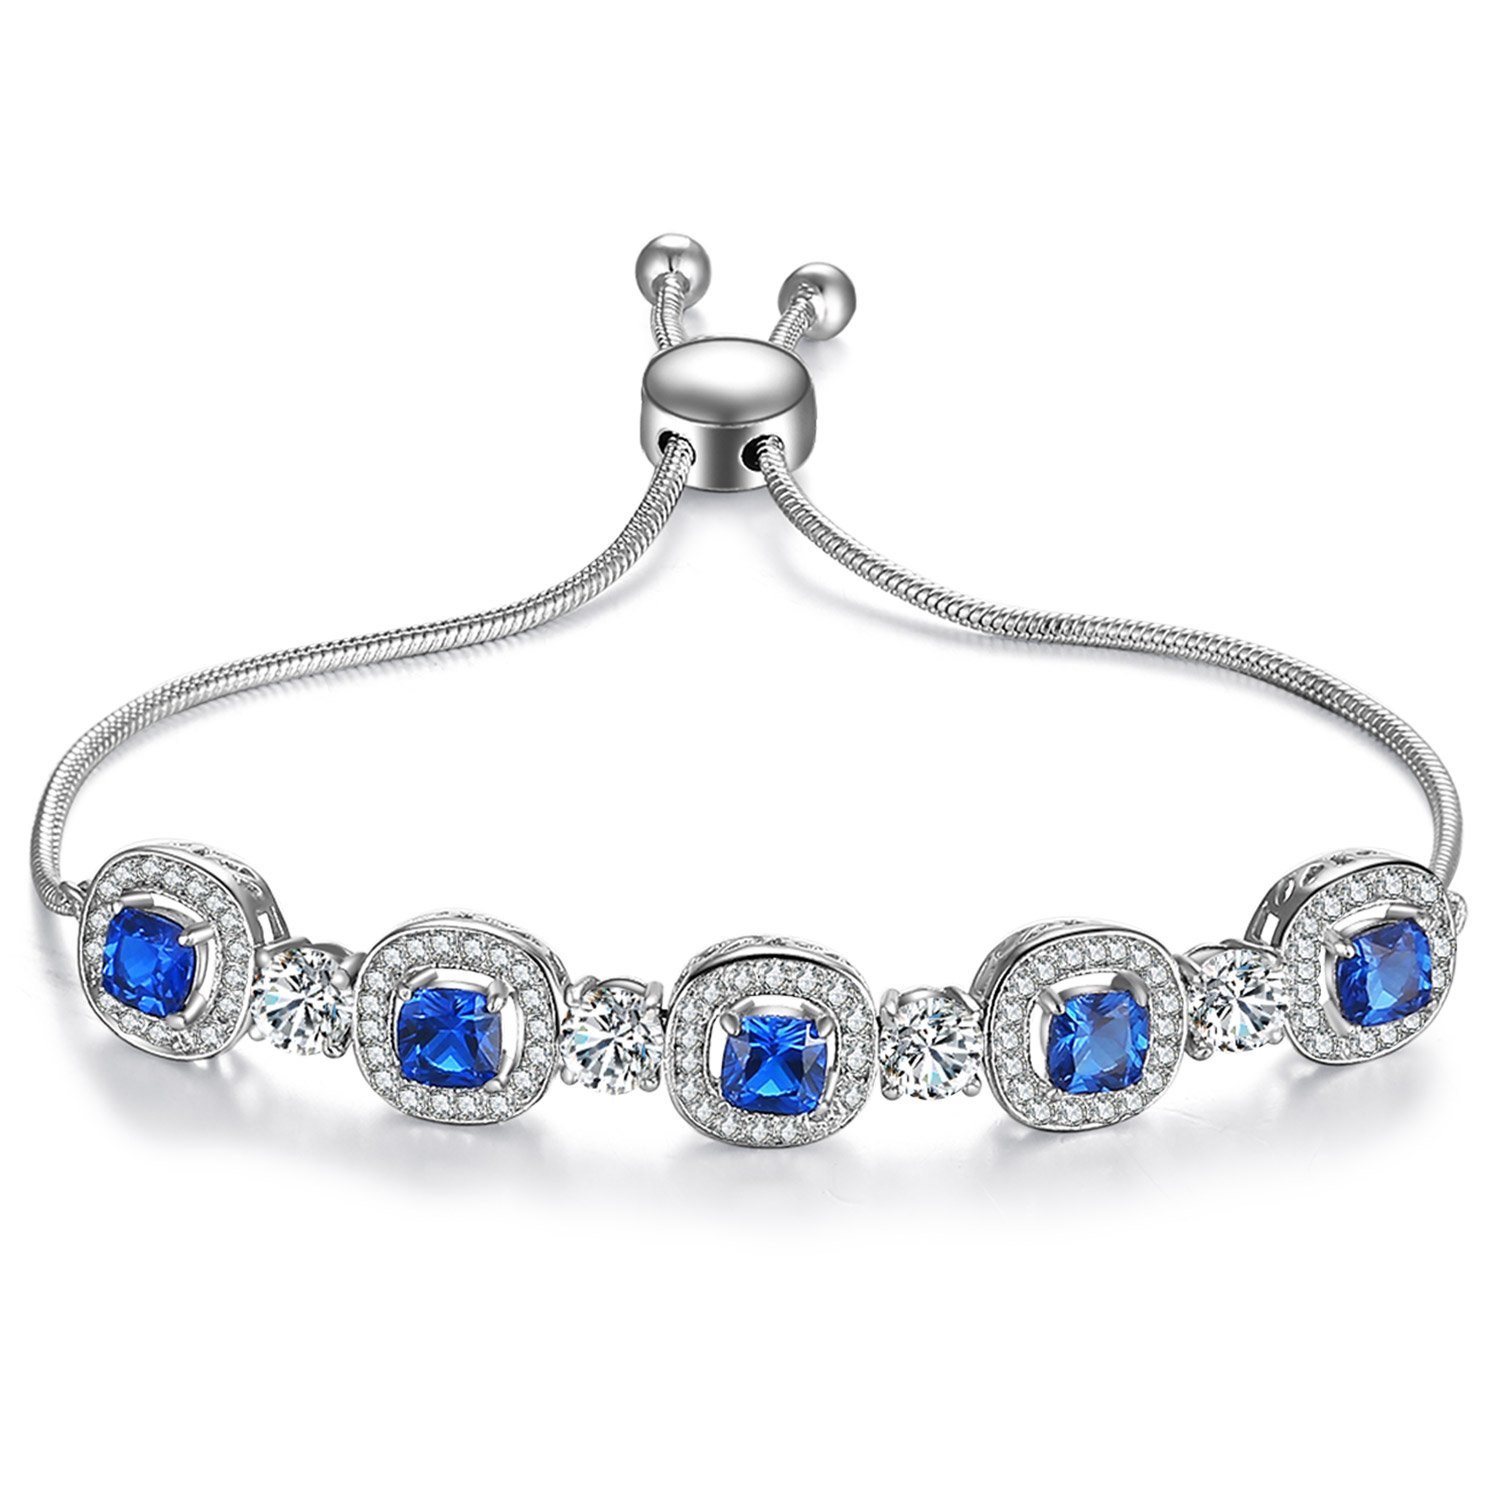 Caperci Adjustable Cushion-Cut Blue Sapphire Sterling Silver Jewelry Bolo Bracelet for Women Caperci Jewelers CA01104